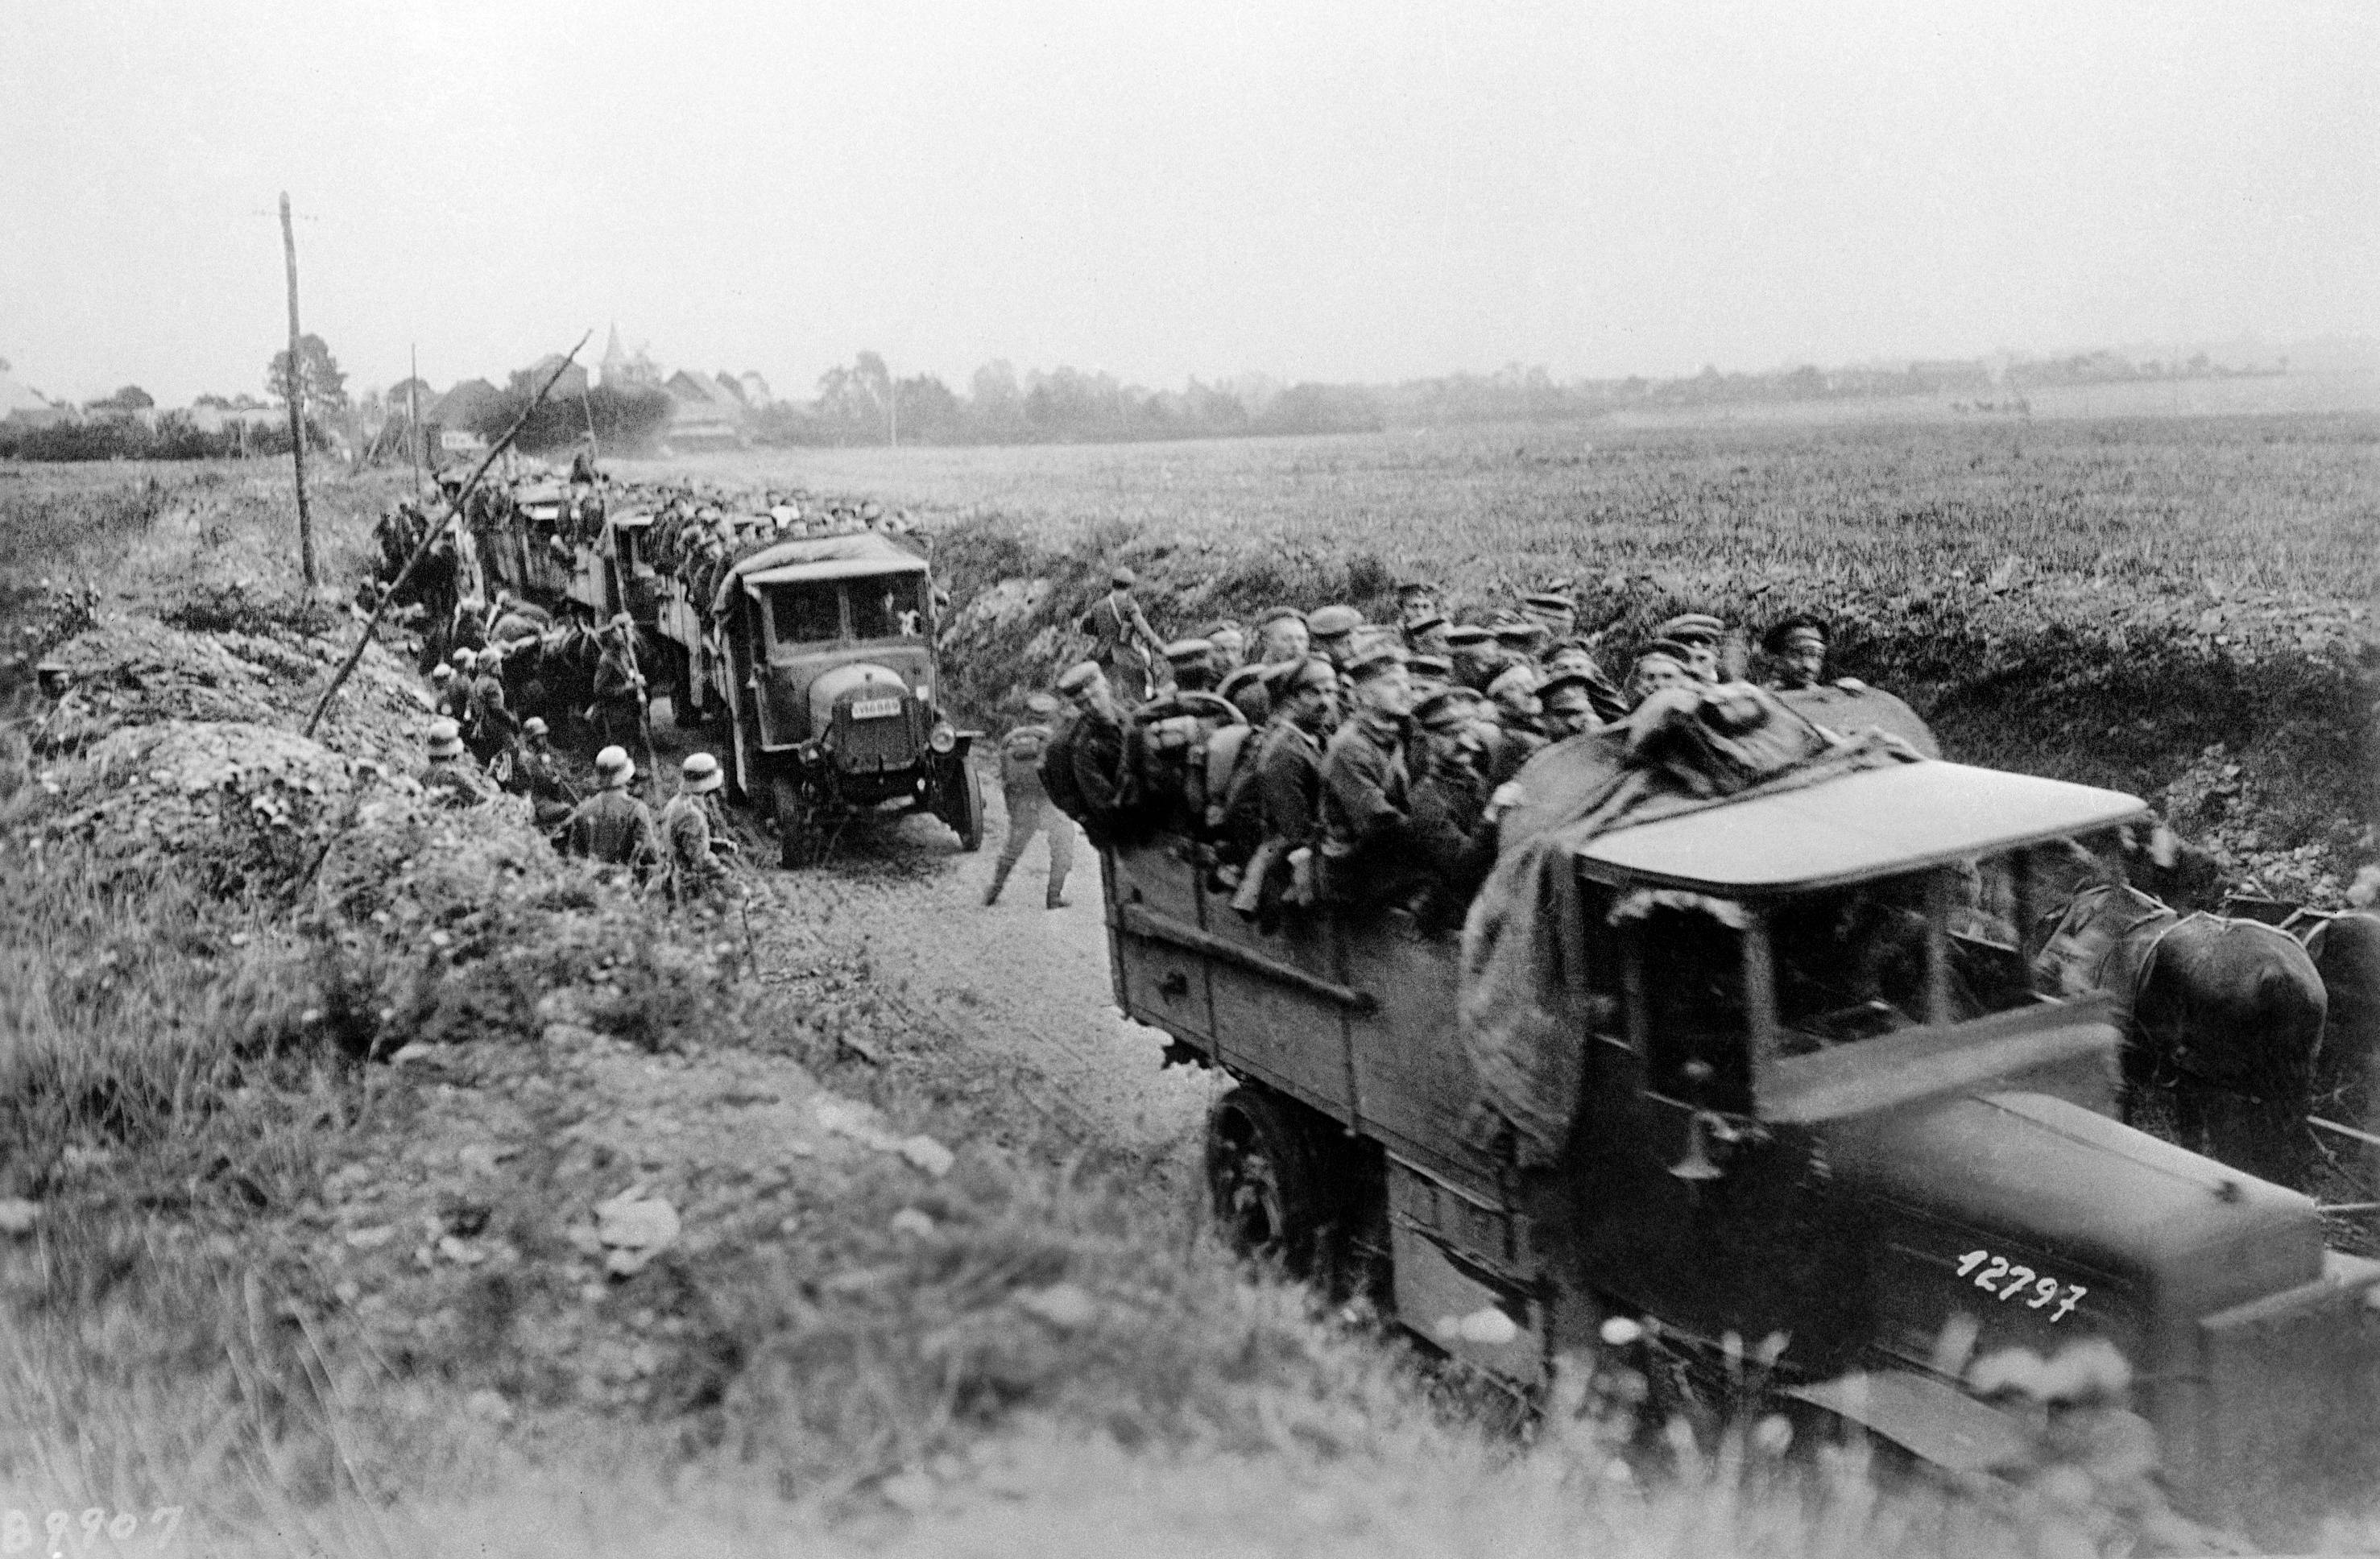 94 OF 100: In this undated file photo, German reserves being rushed to front by trucks in Germany.